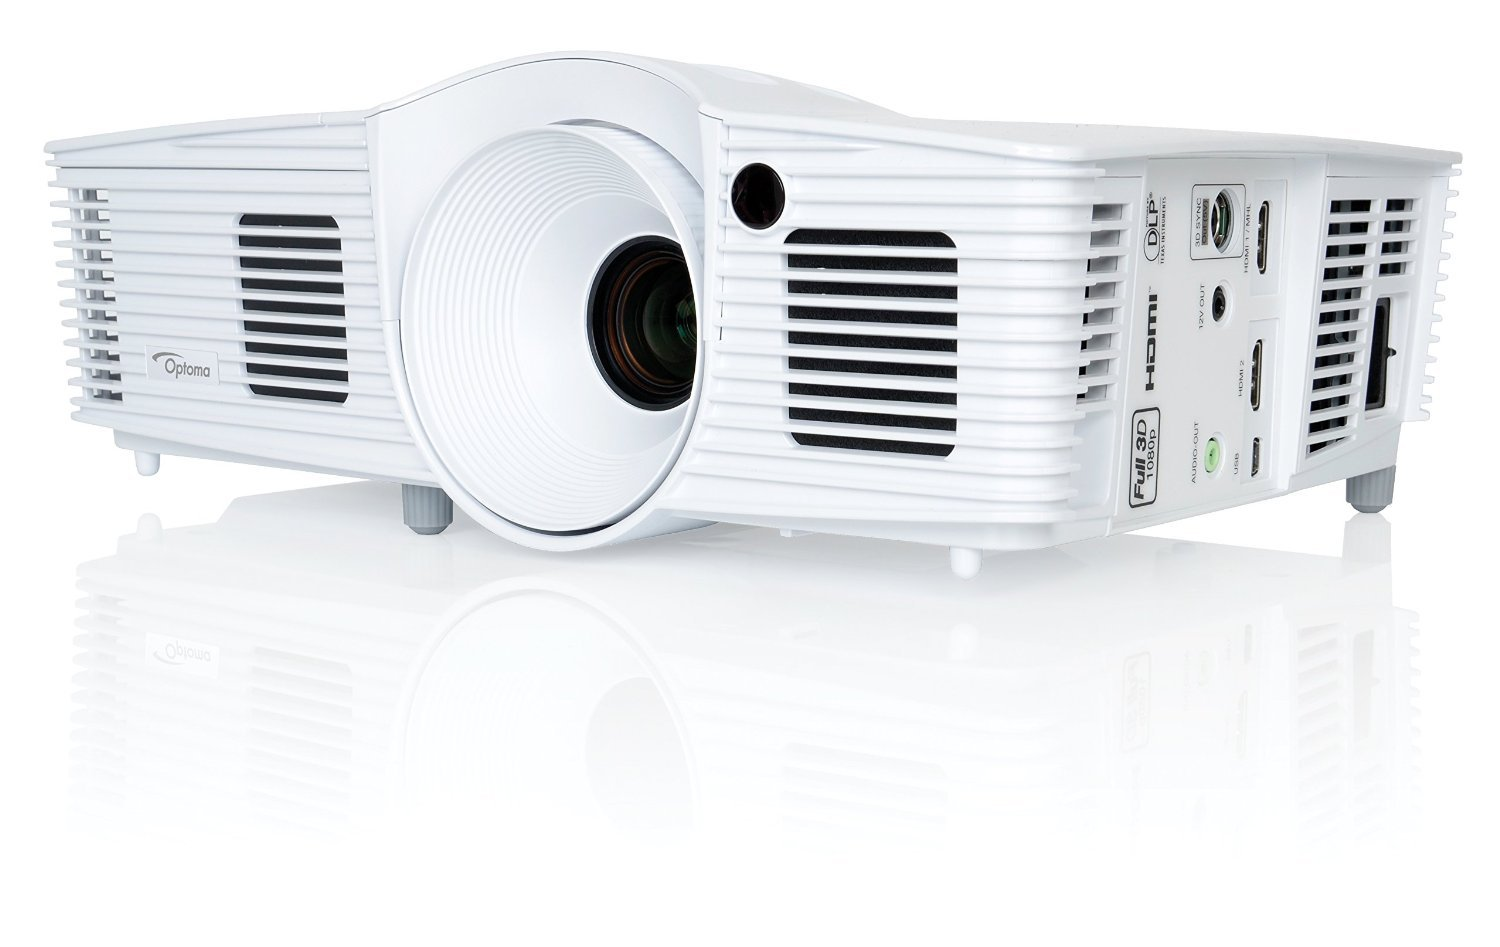 4. Optoma HD26 1080p 3D DLP Home Theater Projector